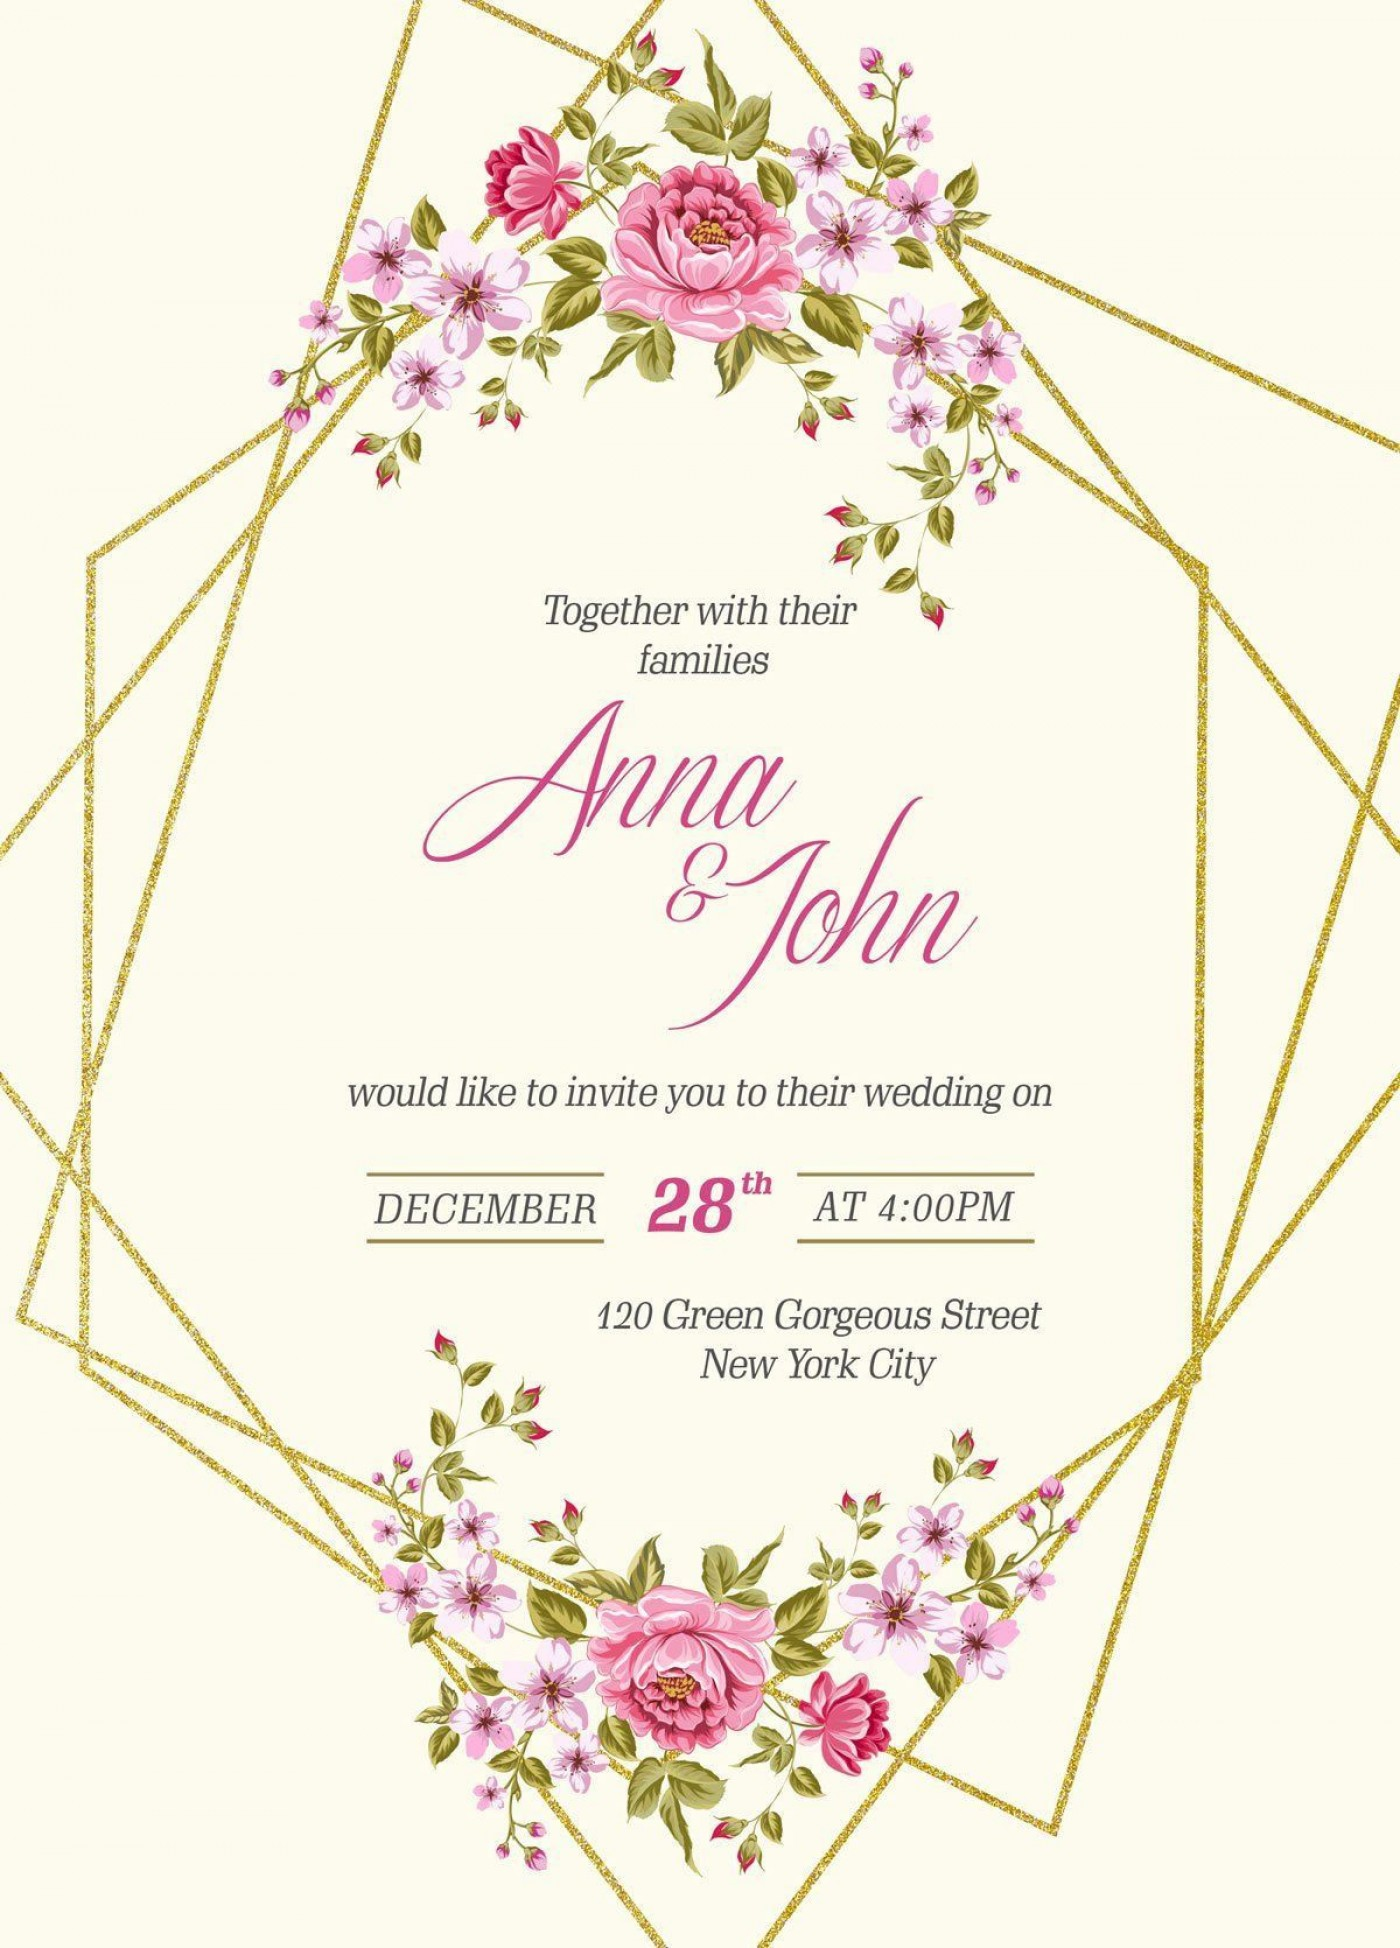 005 Wondrou Download Free Wedding Invitation Card Template Concept  Indian-traditional-wedding-invitation-card-psd-template-free-download Indian Psd Format1400